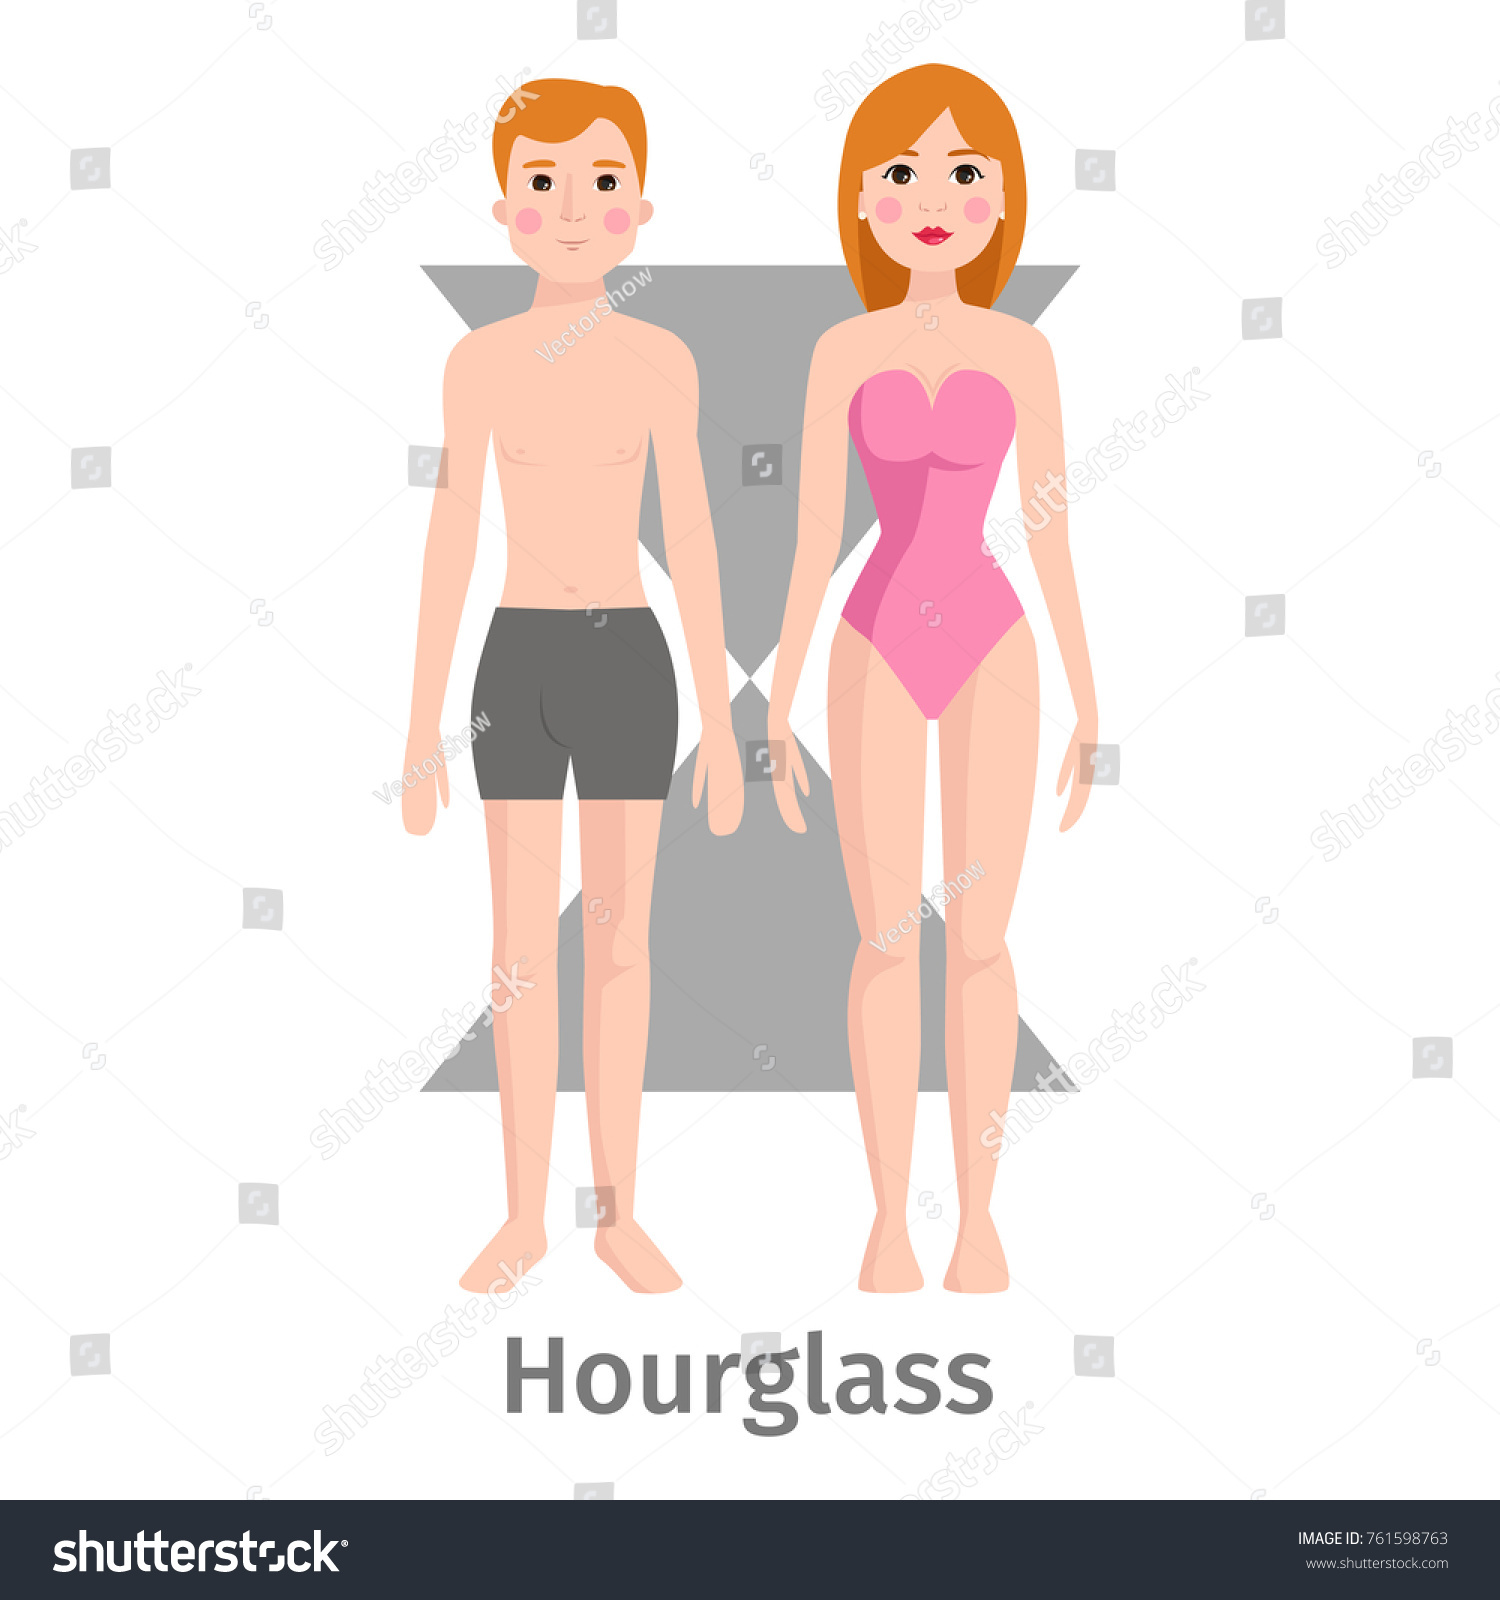 Vector Illustration Hourglass Body Shape Types Stock Vector Royalty Free 761598763